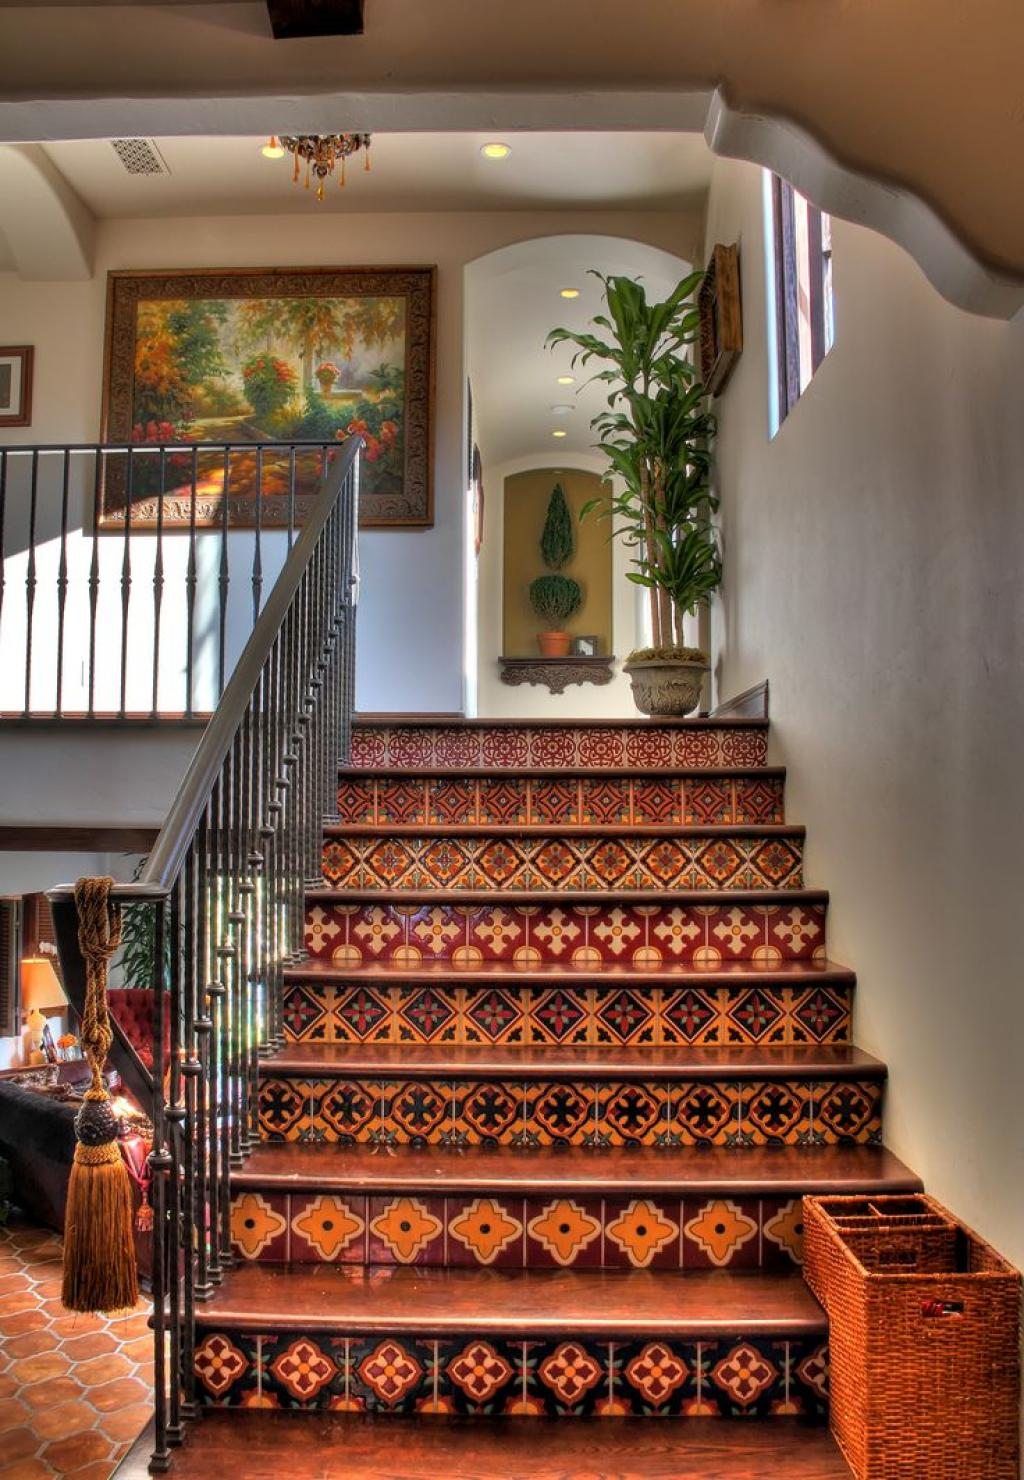 Mediterranean spanish style homes interior stairs decor for Spanish mediterranean decor